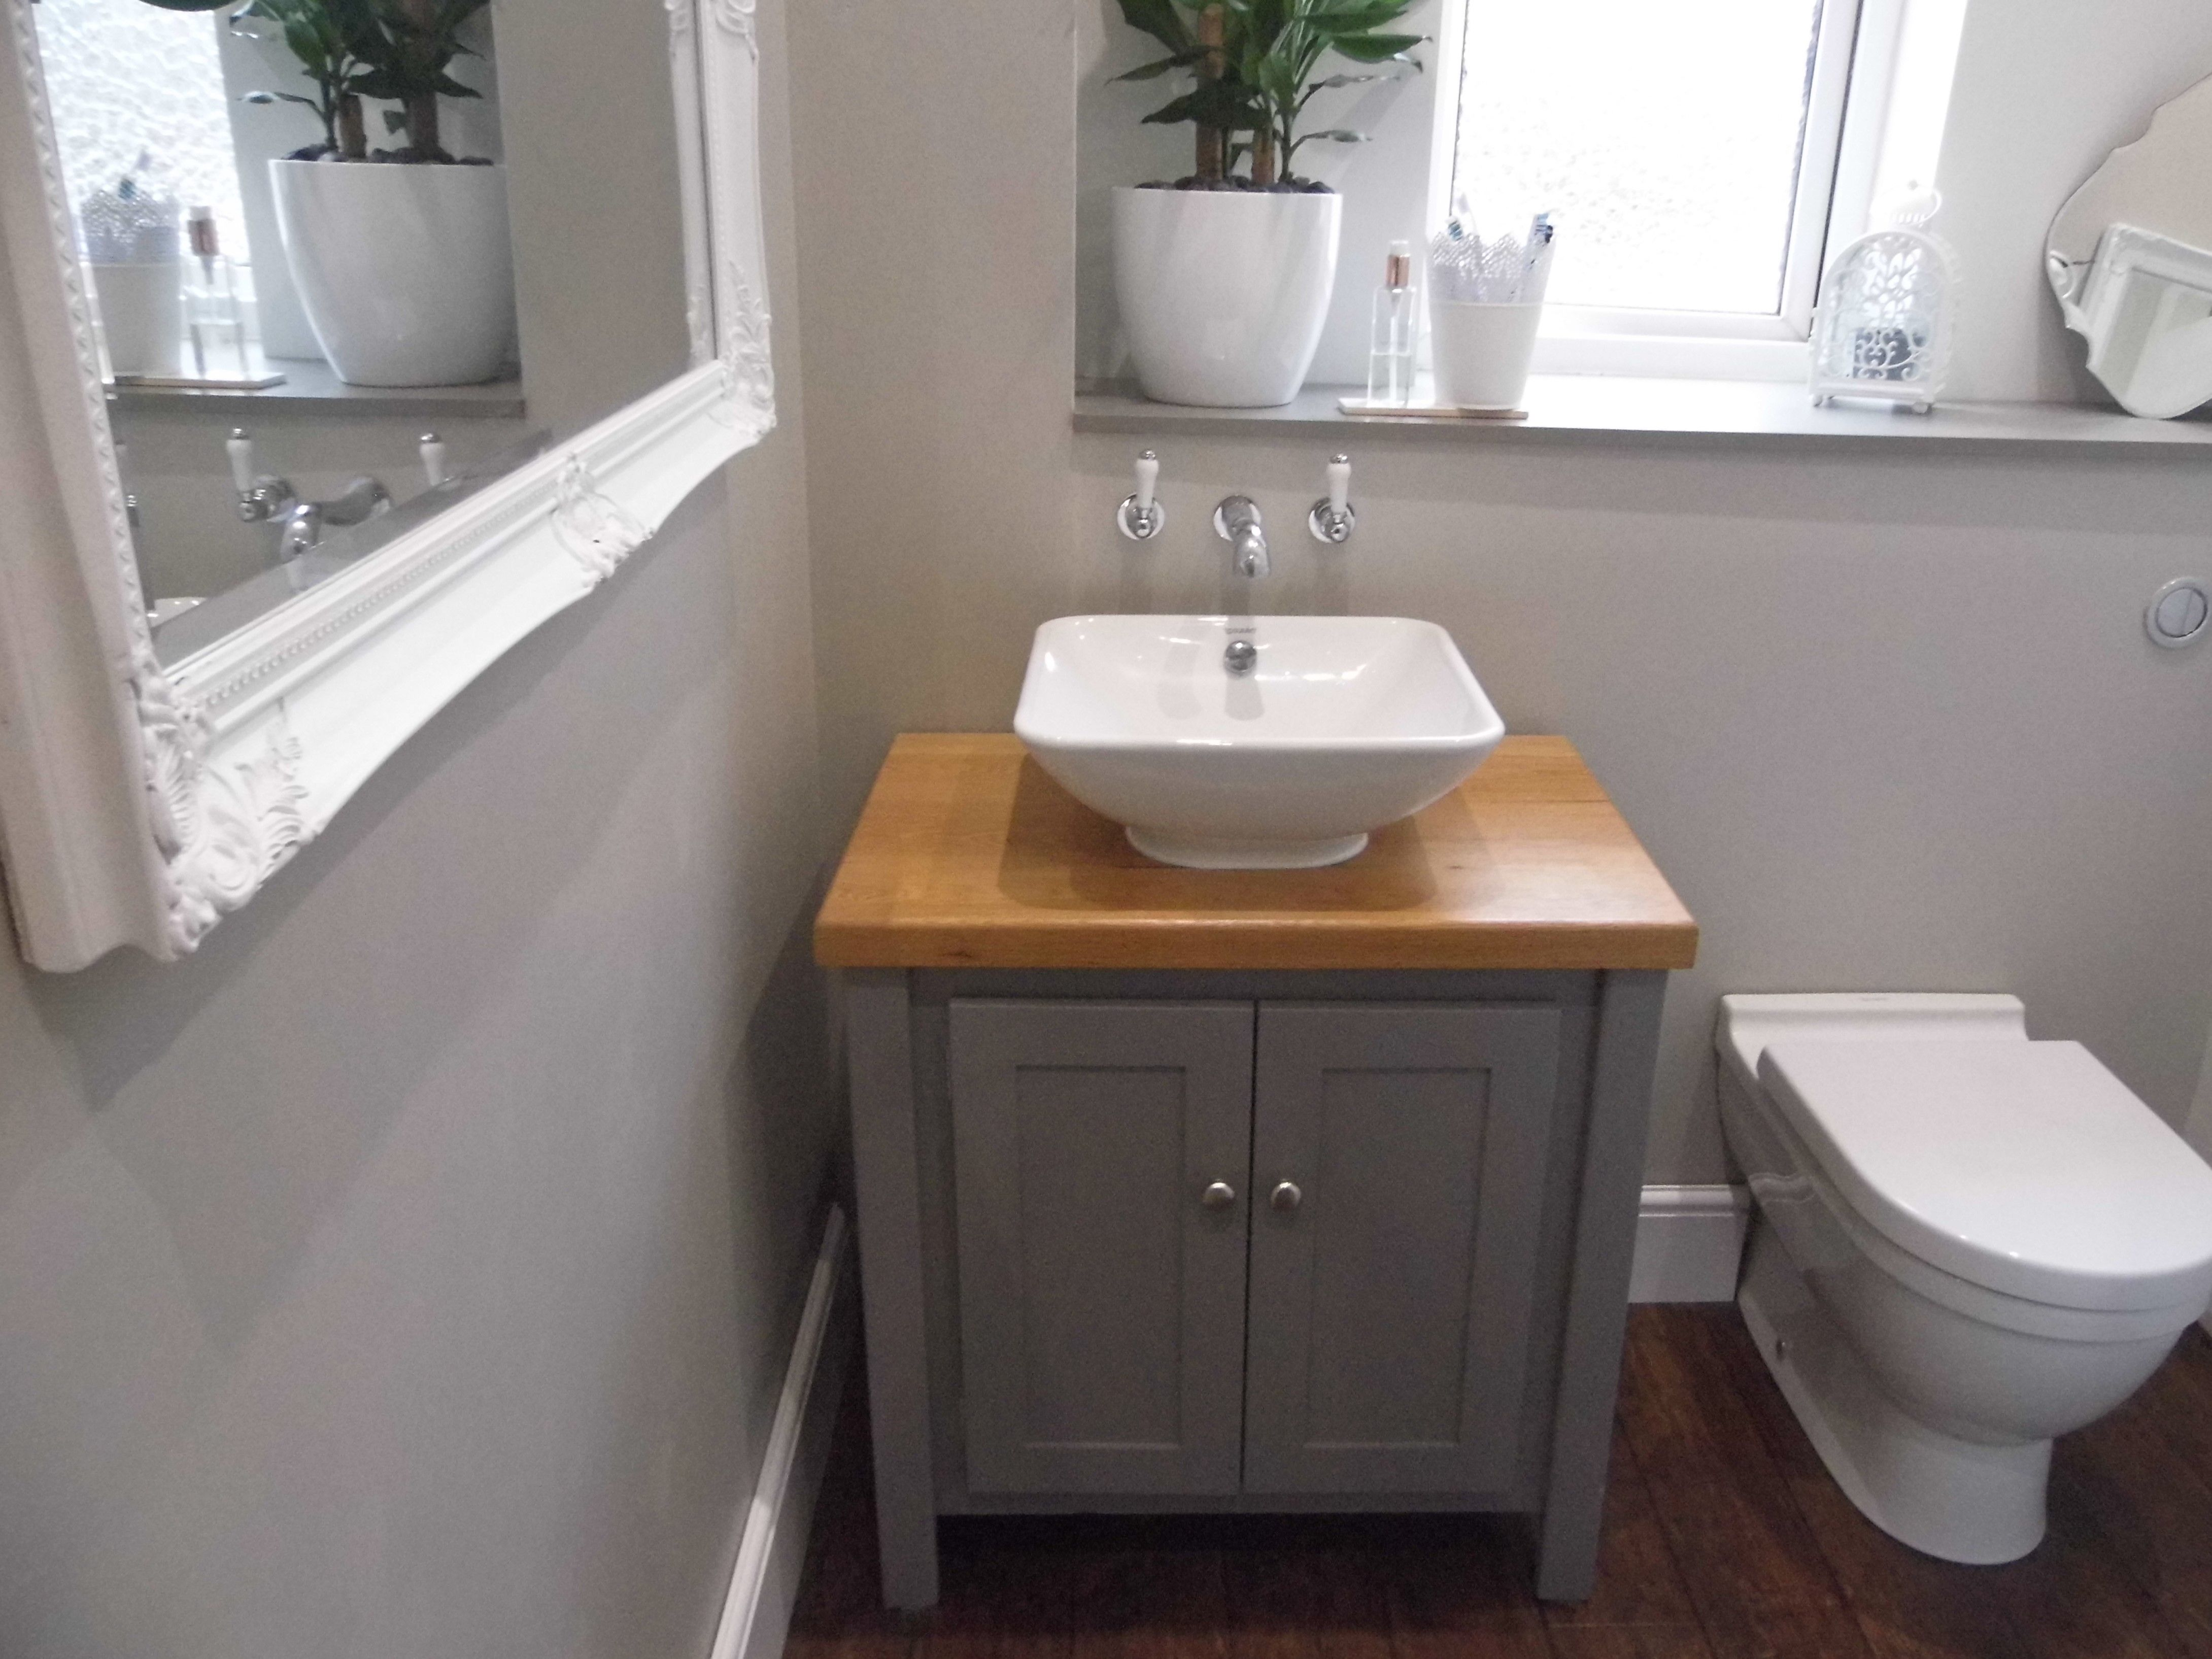 vanities duravit sink pedestal units complete from cabinet ideas lcube architonic bathroom example vanity by base